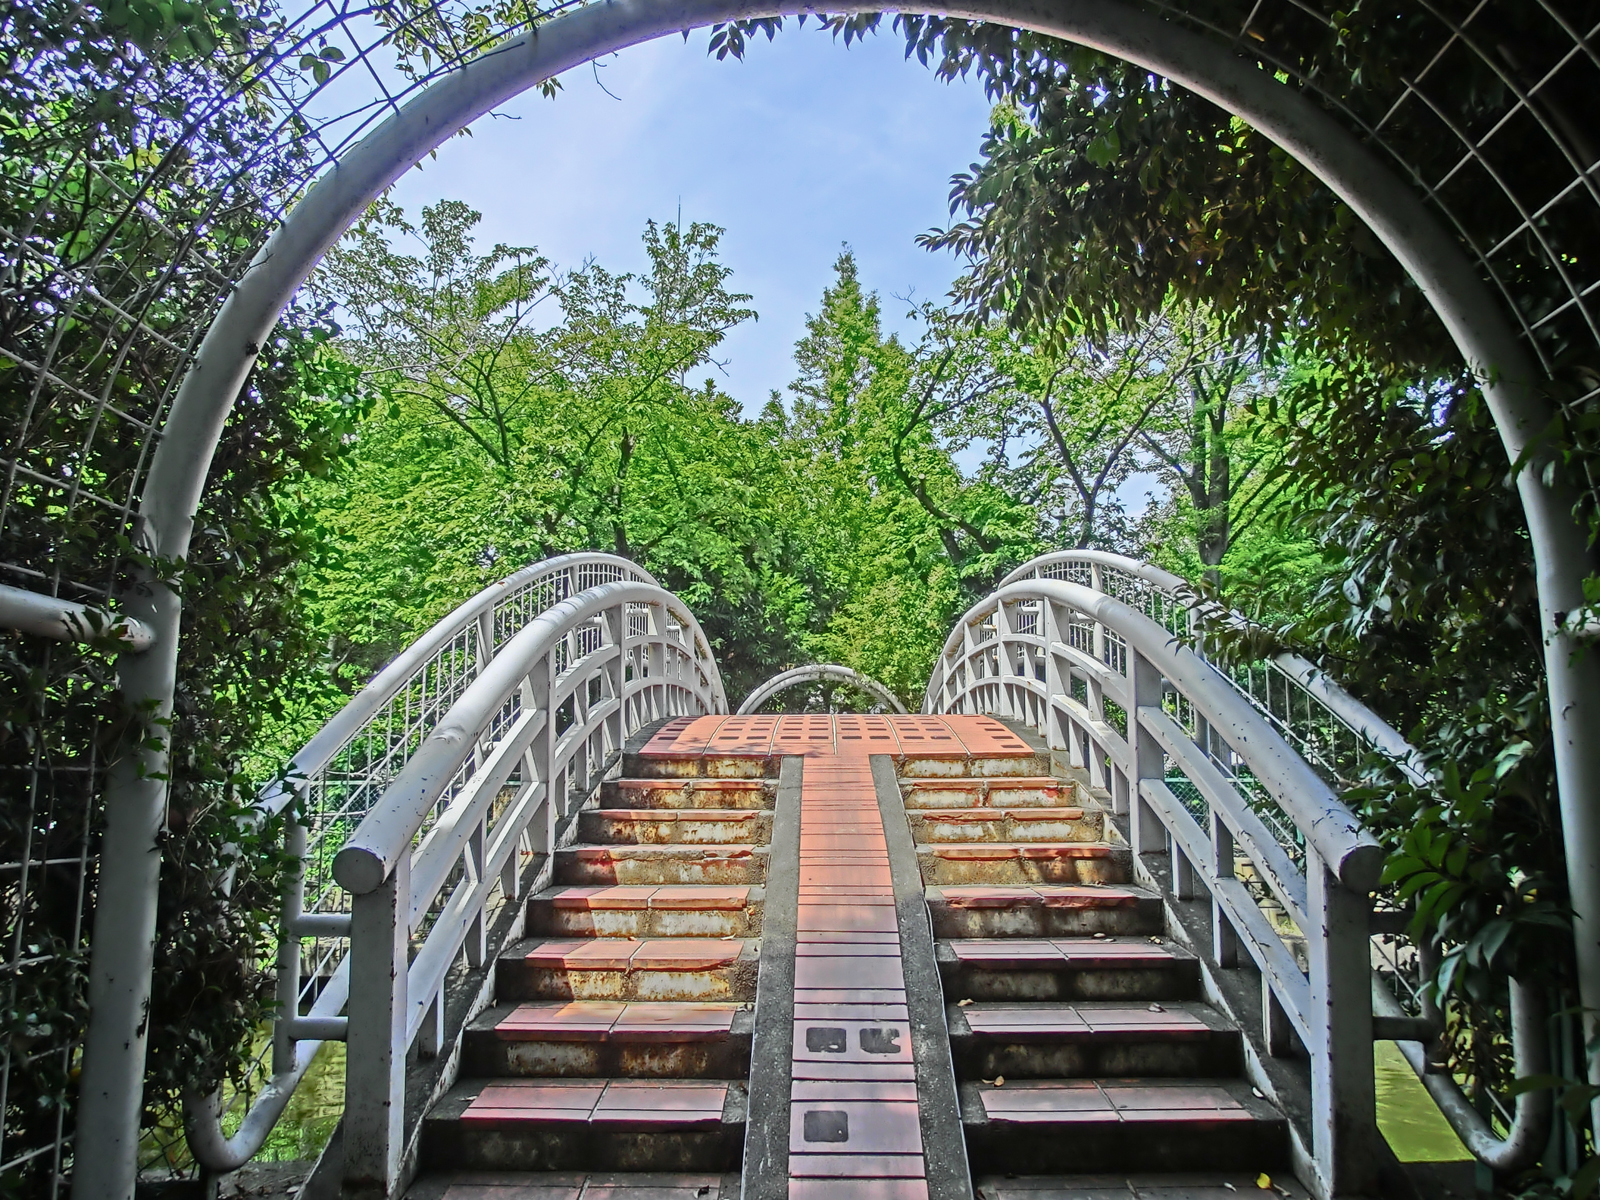 Do you find this bridge?